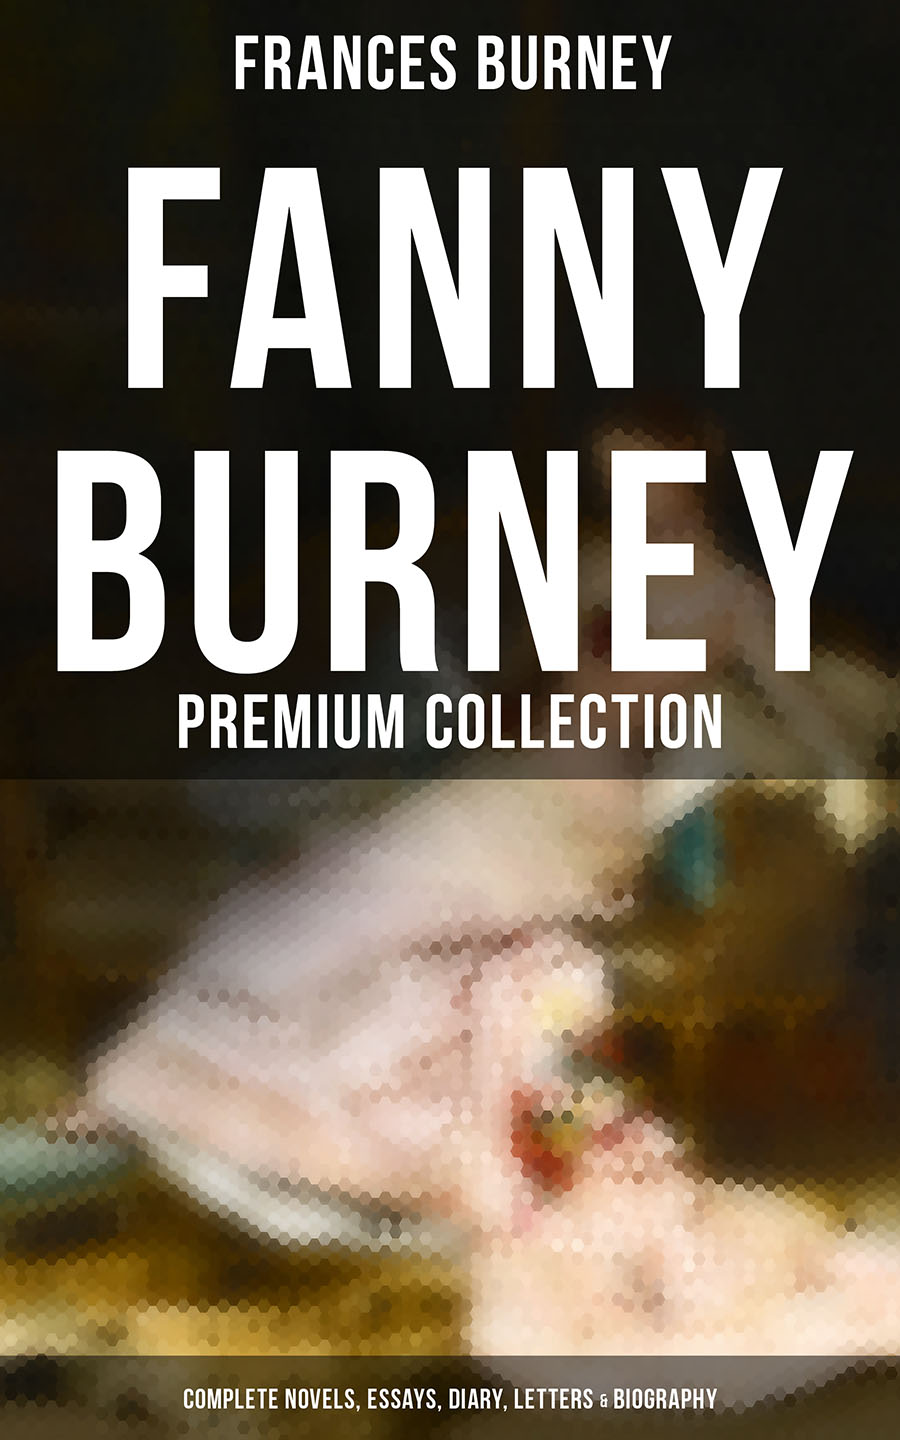 Frances Burney FANNY BURNEY Premium Collection: Complete Novels, Essays, Diary, Letters & Biography (Illustrated Edition)